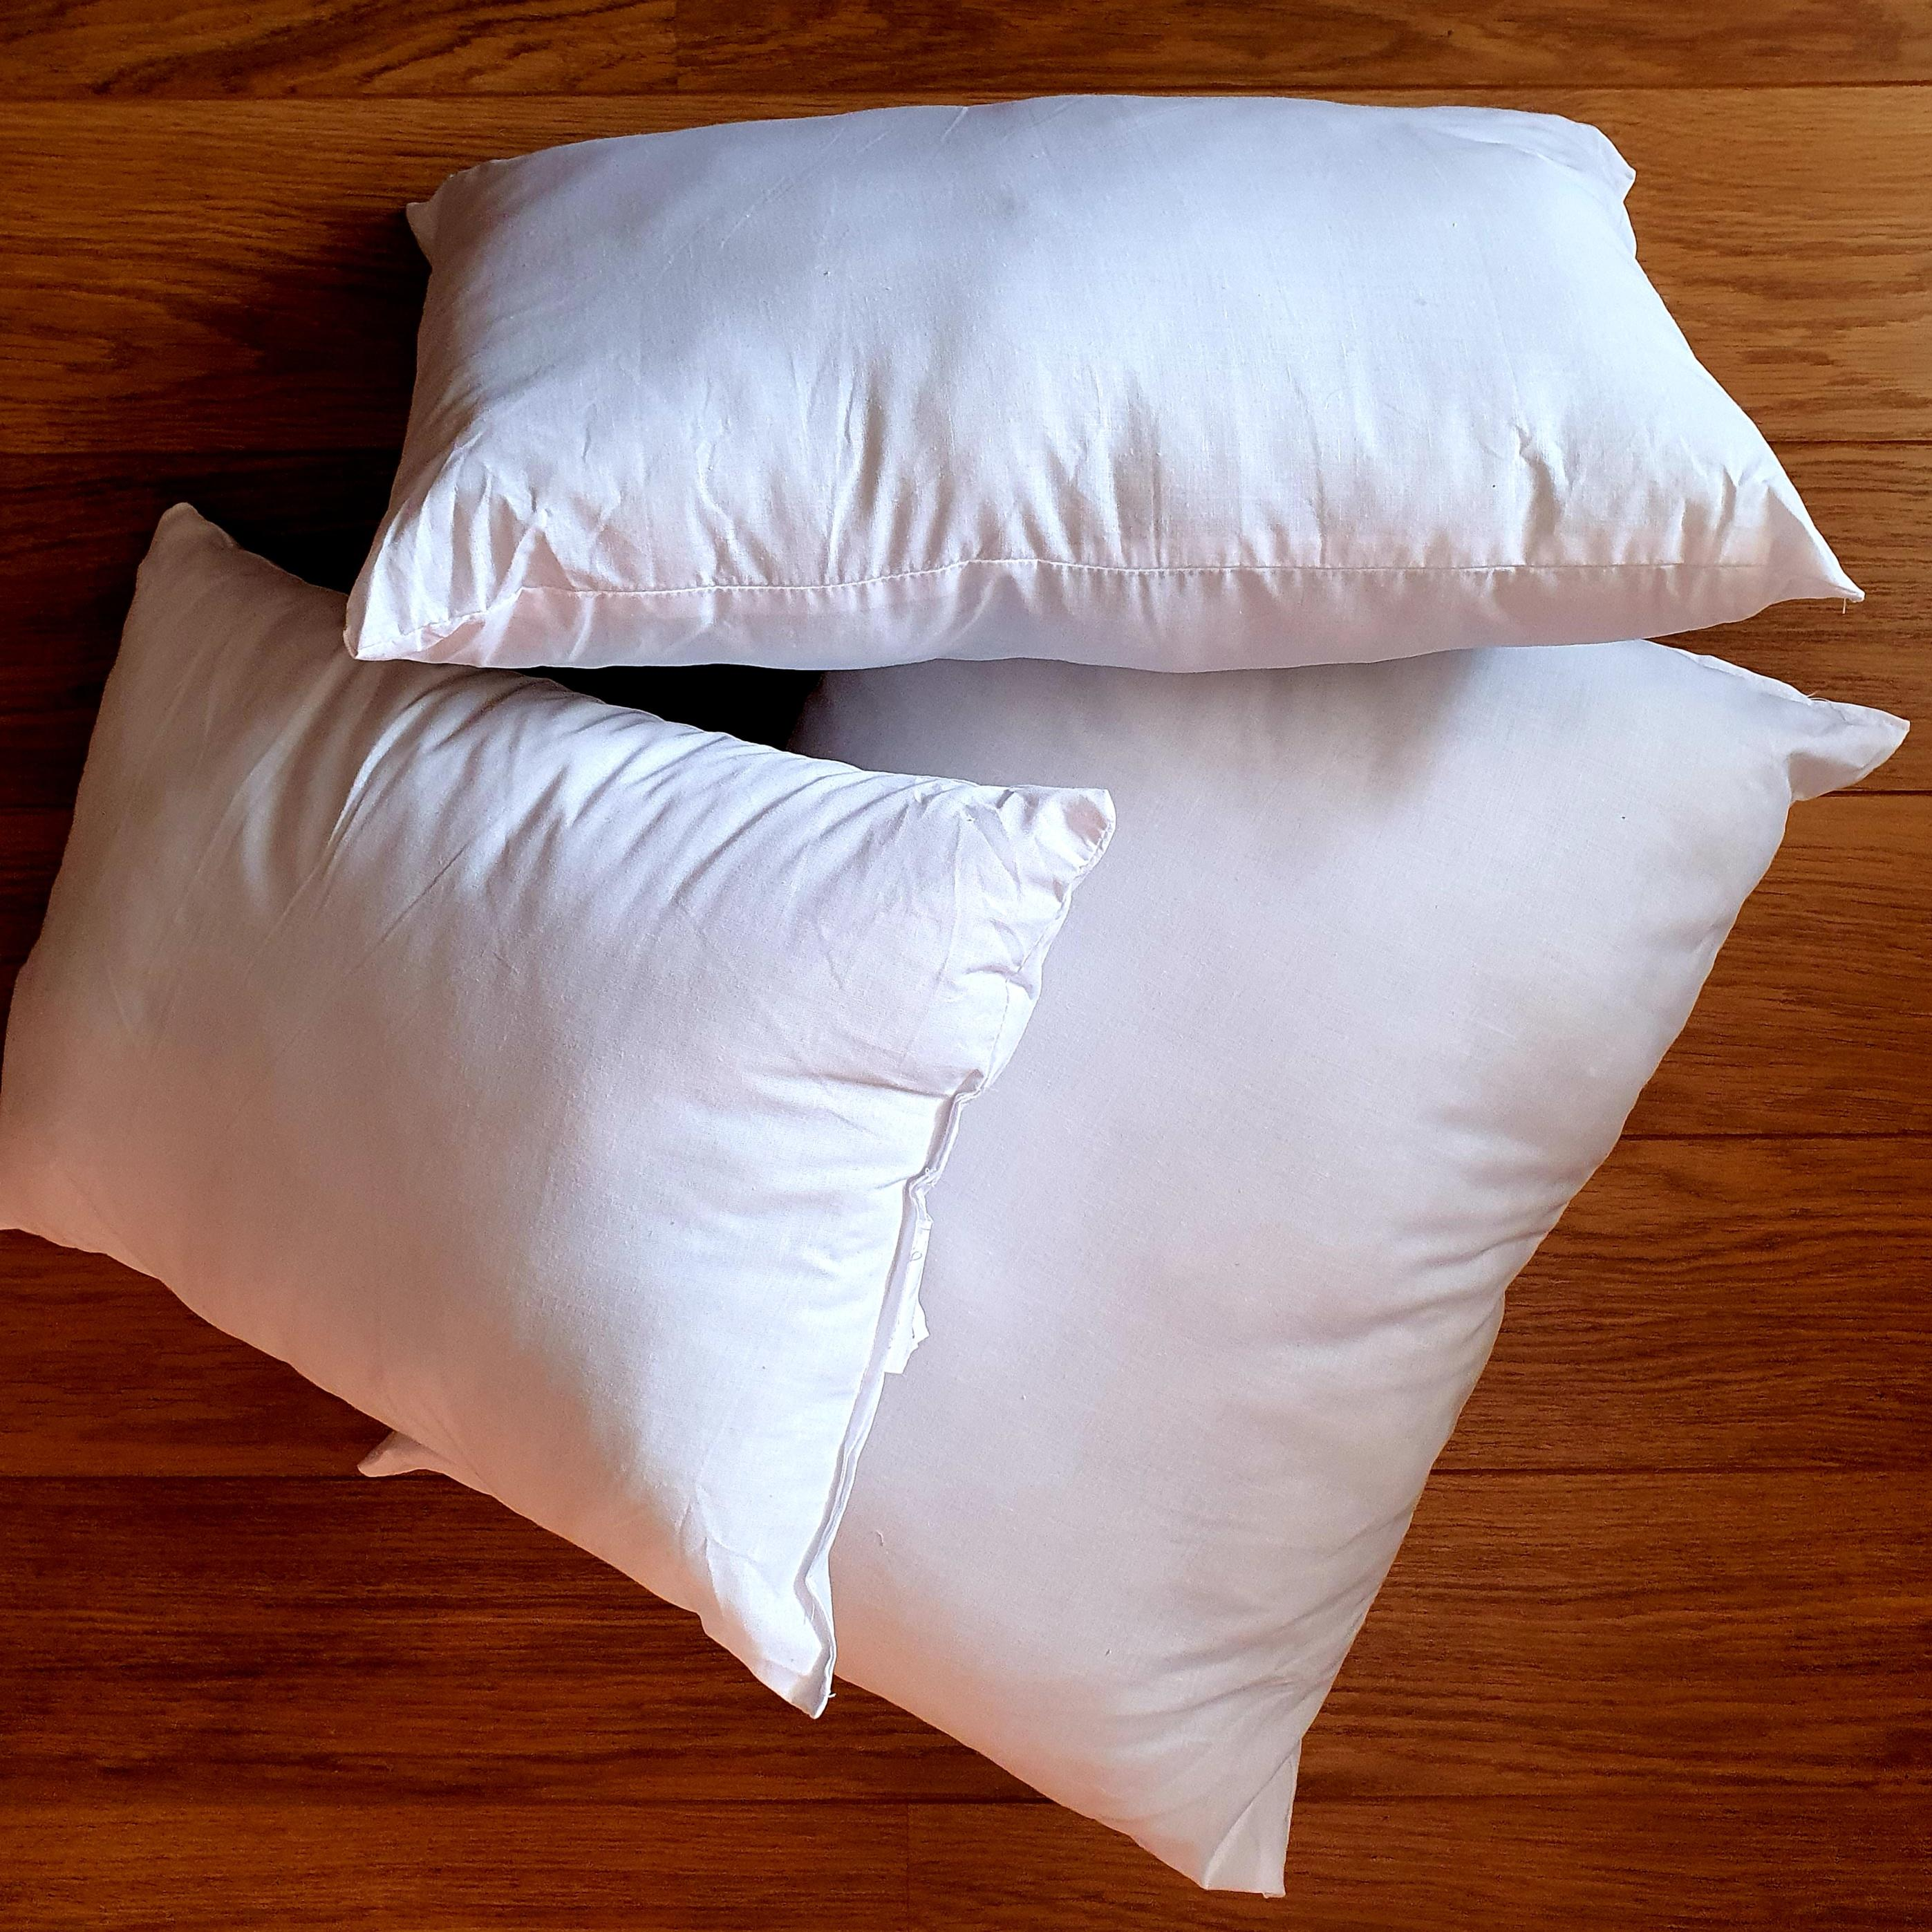 Group shot of cushion inner pads generously filled with Eco-Hollowfibre made from recycled plastic bottles in white poly cotton outer cover.